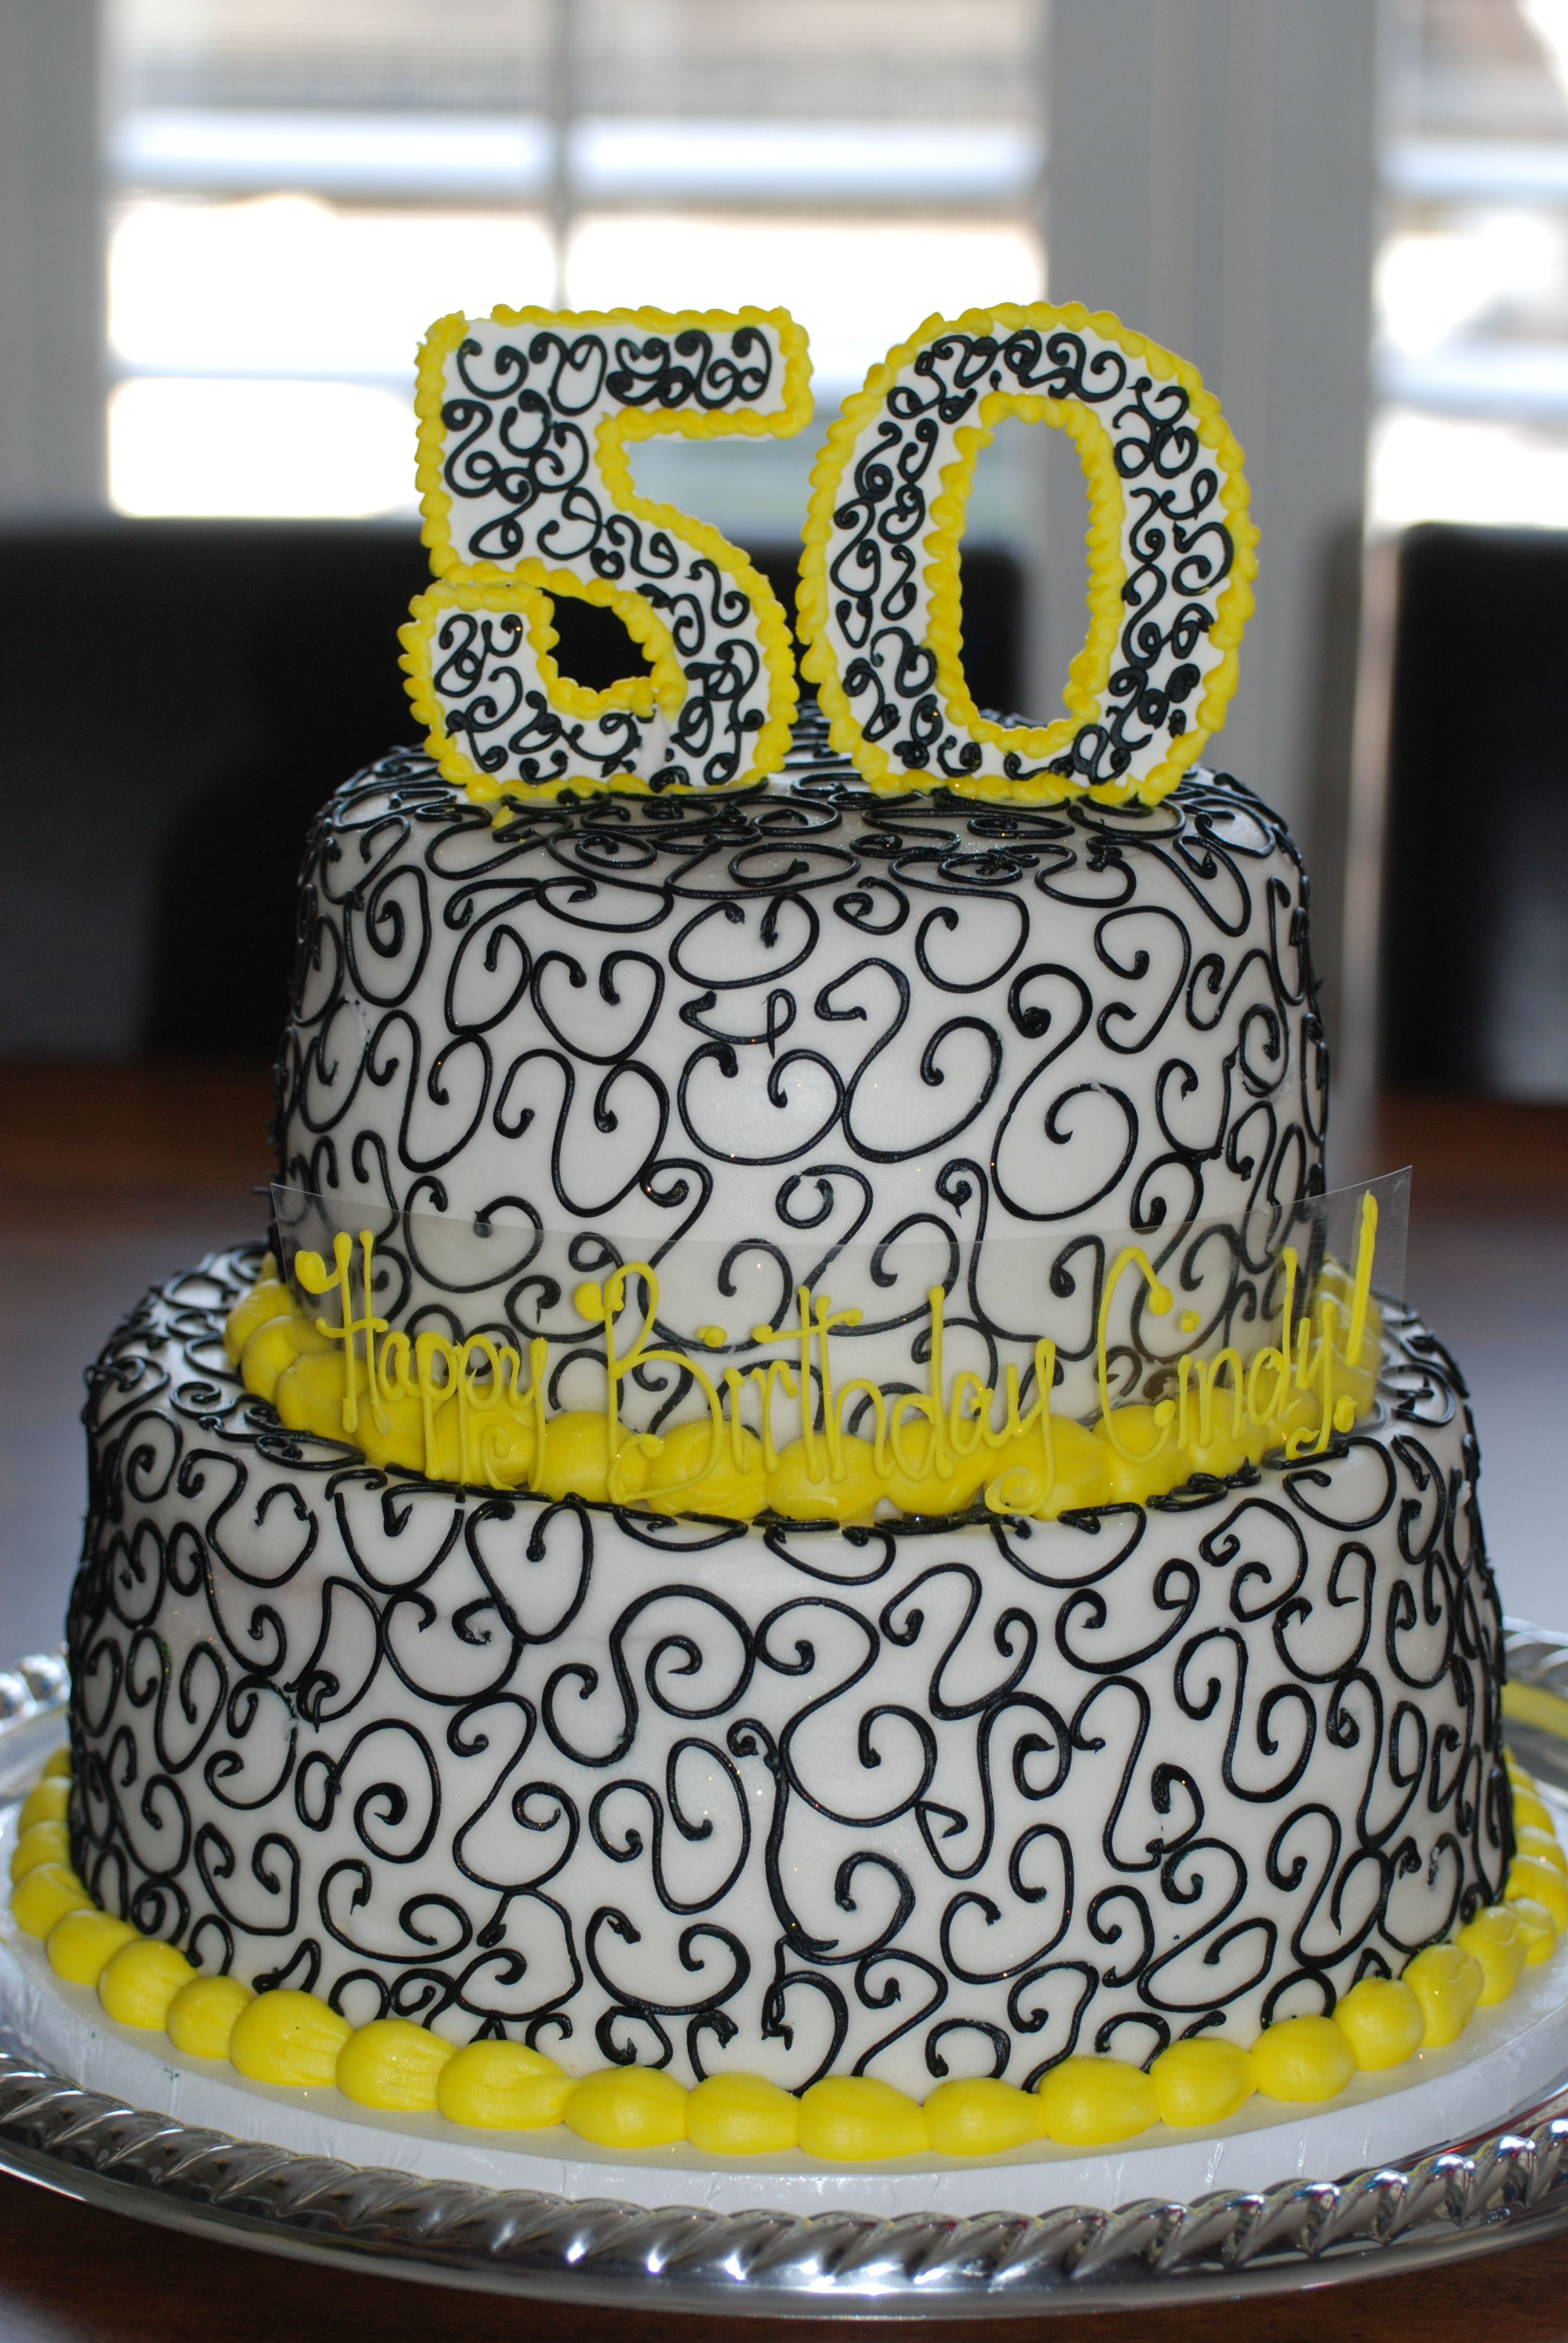 Places to have a 50th birthday party